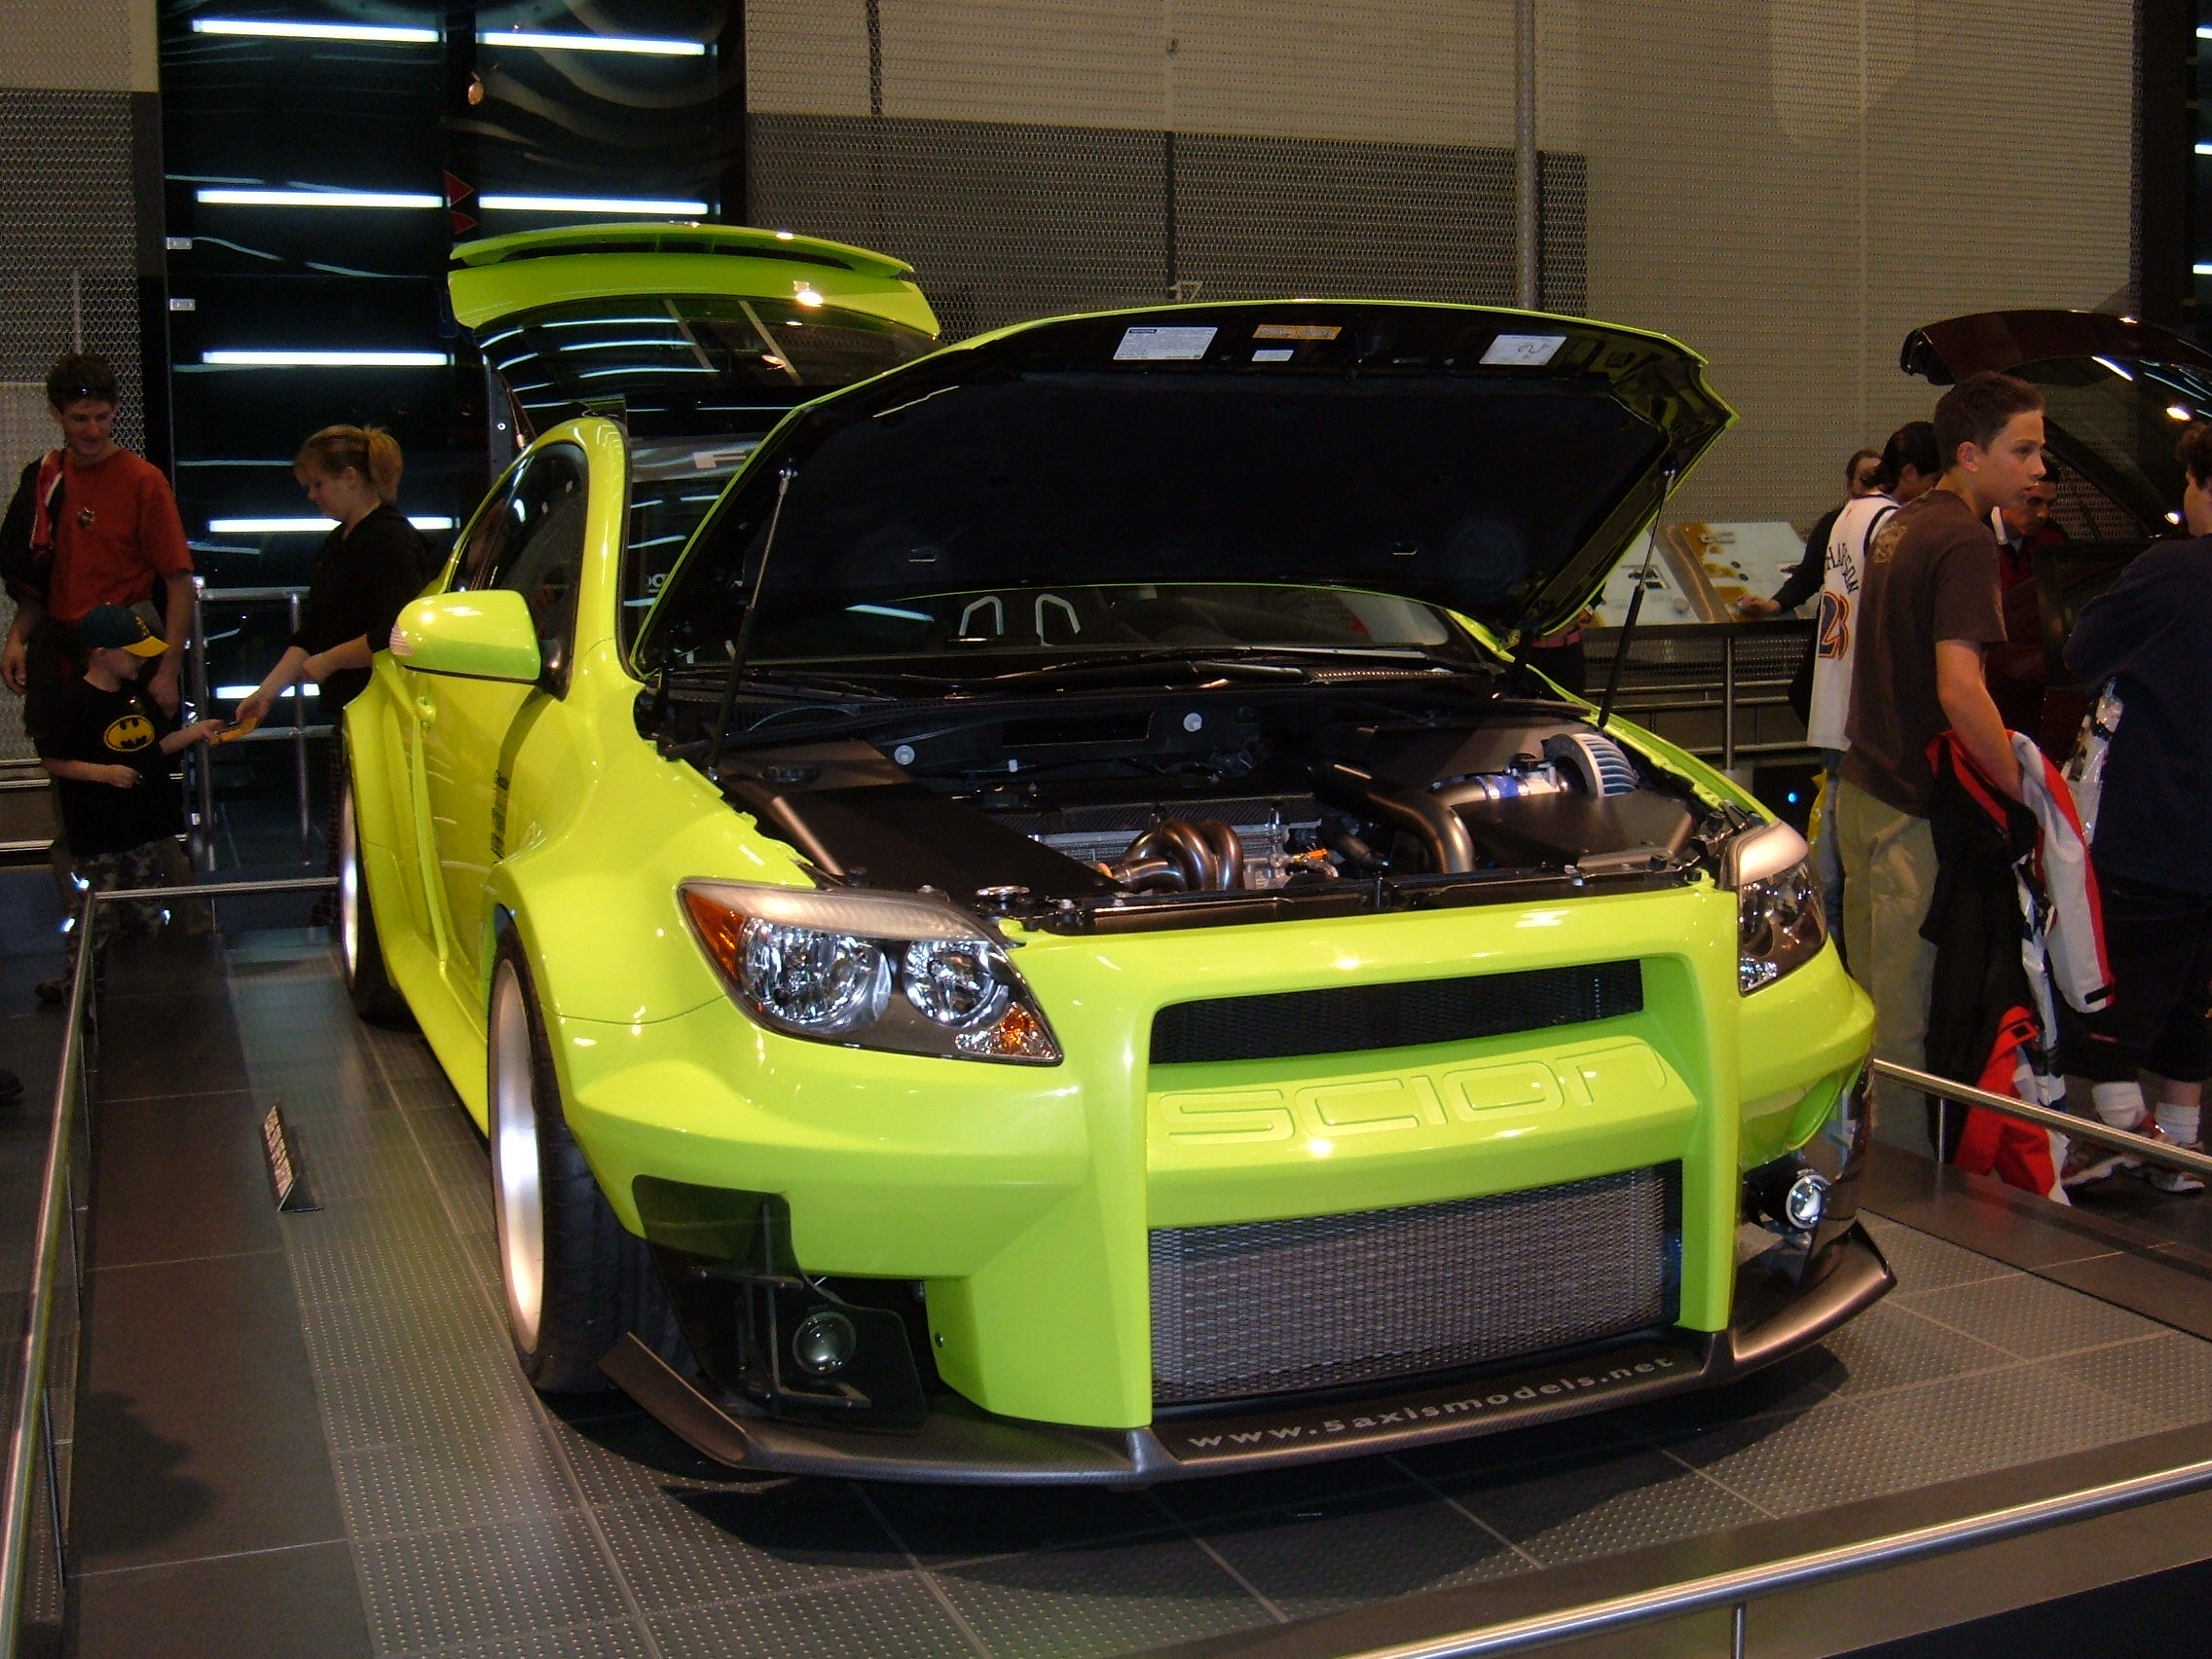 File:2005 yellow custom Scion tC front.JPG - Wikimedia Commons